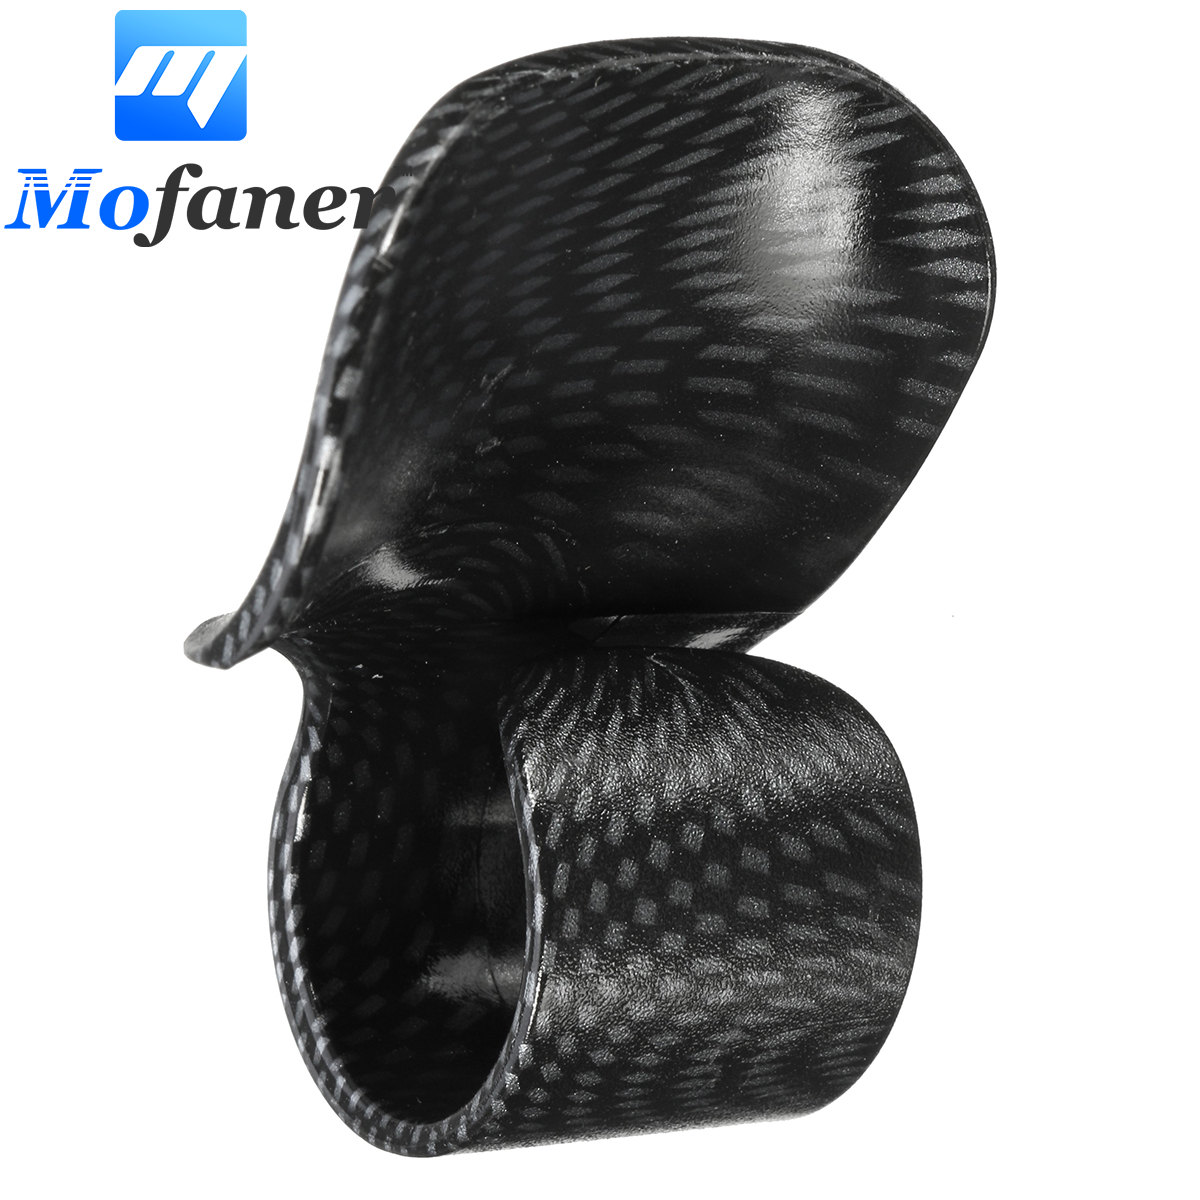 Universal Carbon Motorcycle Throttle Cruise Control Cramp Assist Rest Aid Grip Rocker